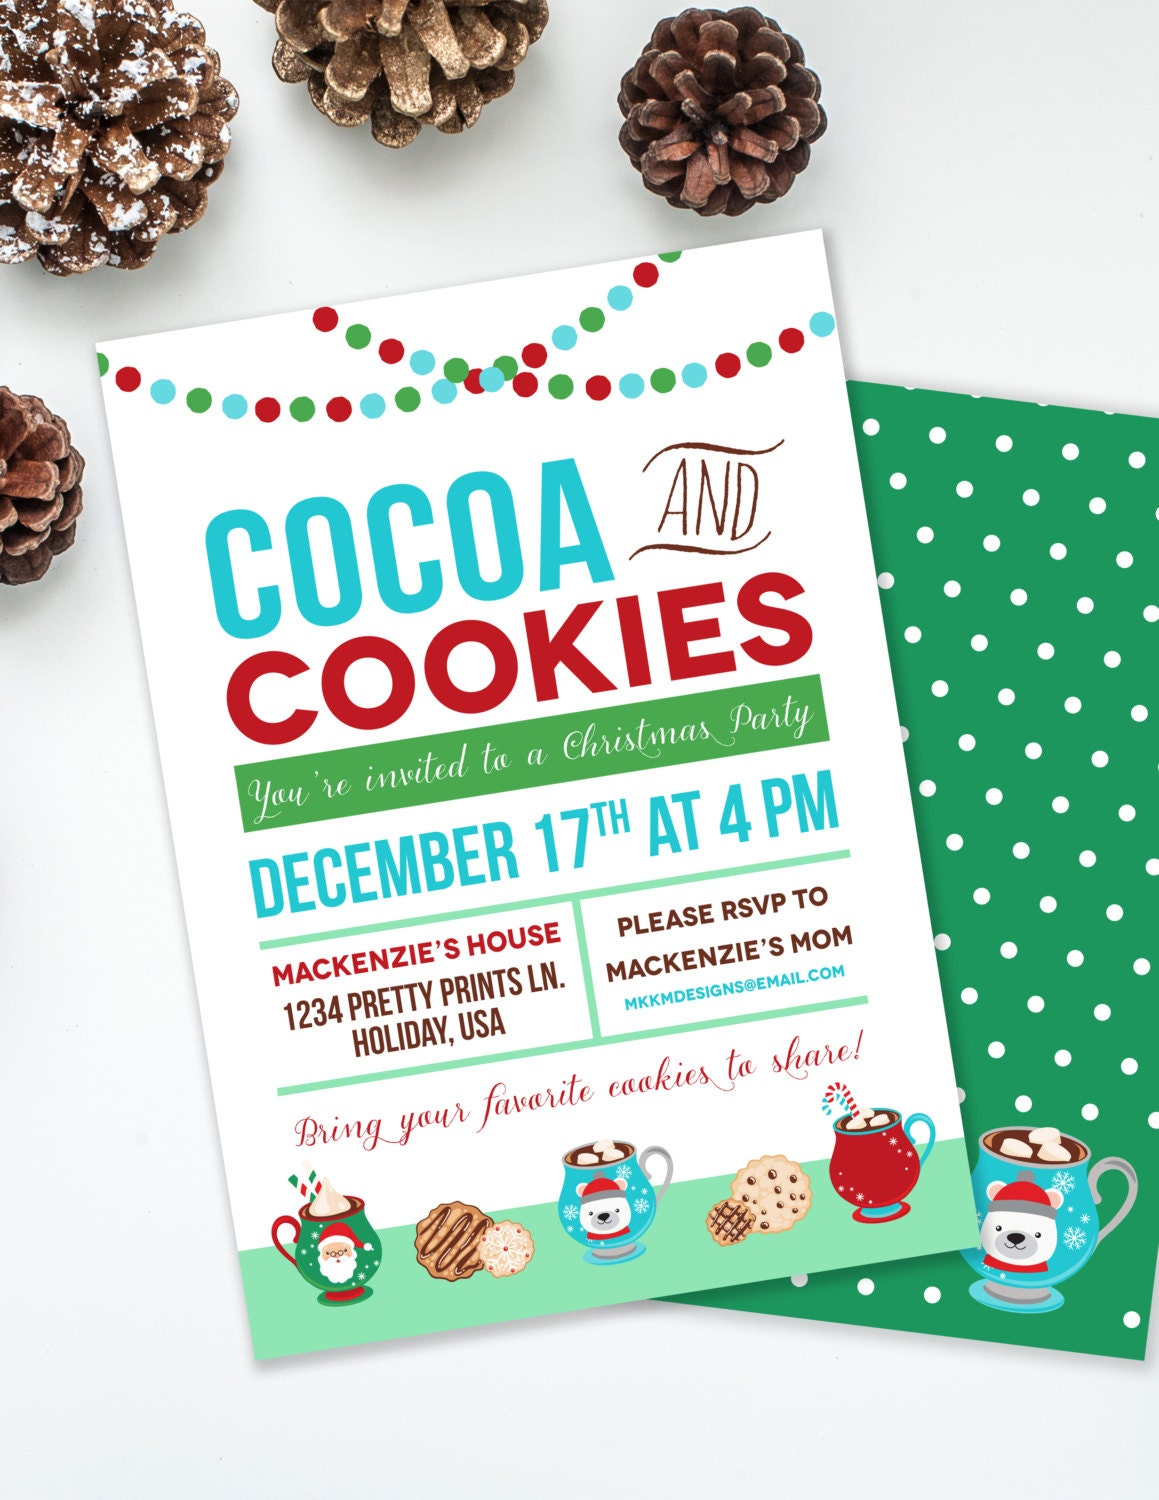 Kids Holiday Party Cocoa and Cookies Christmas Party